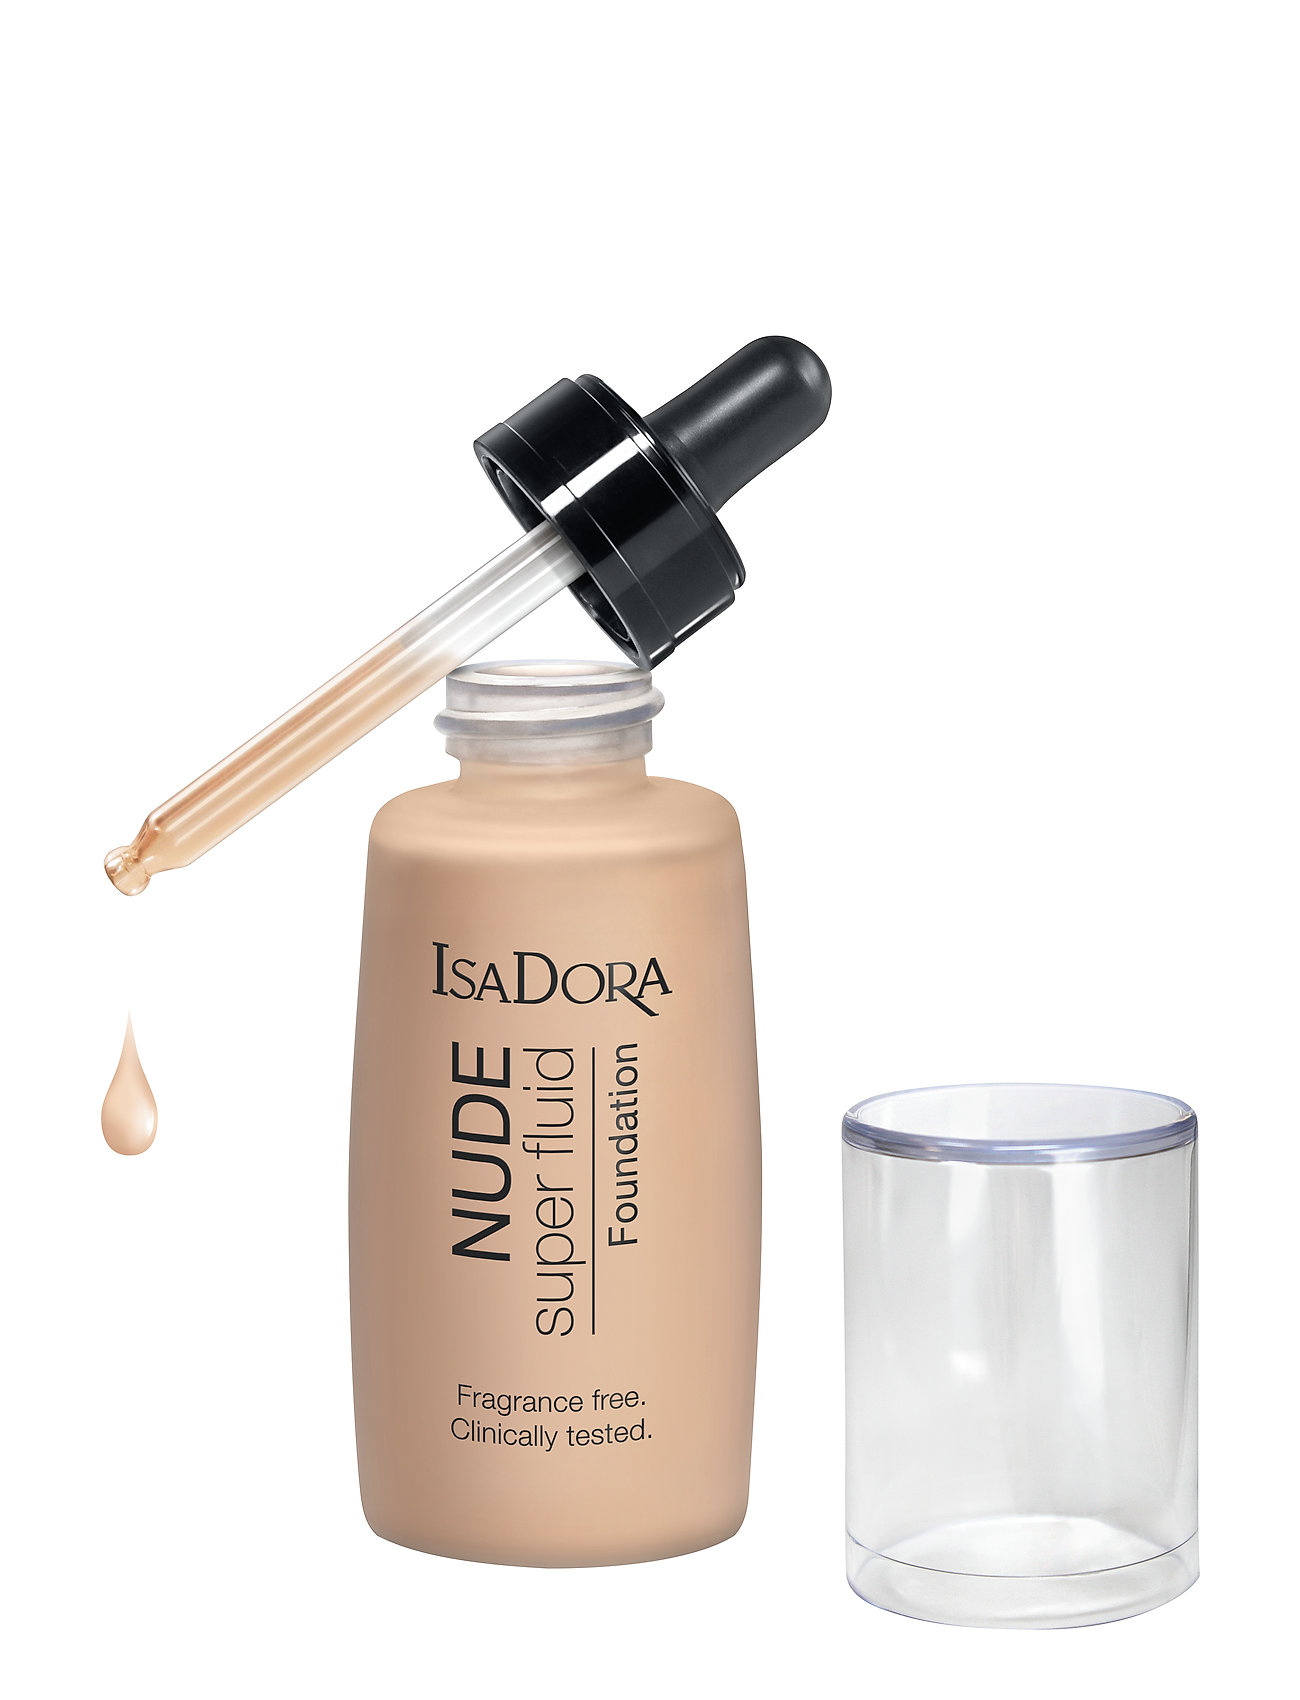 Image of Nude Fluid Foundation 10 Nude Porcelain Foundation Makeup Isadora (3452091279)